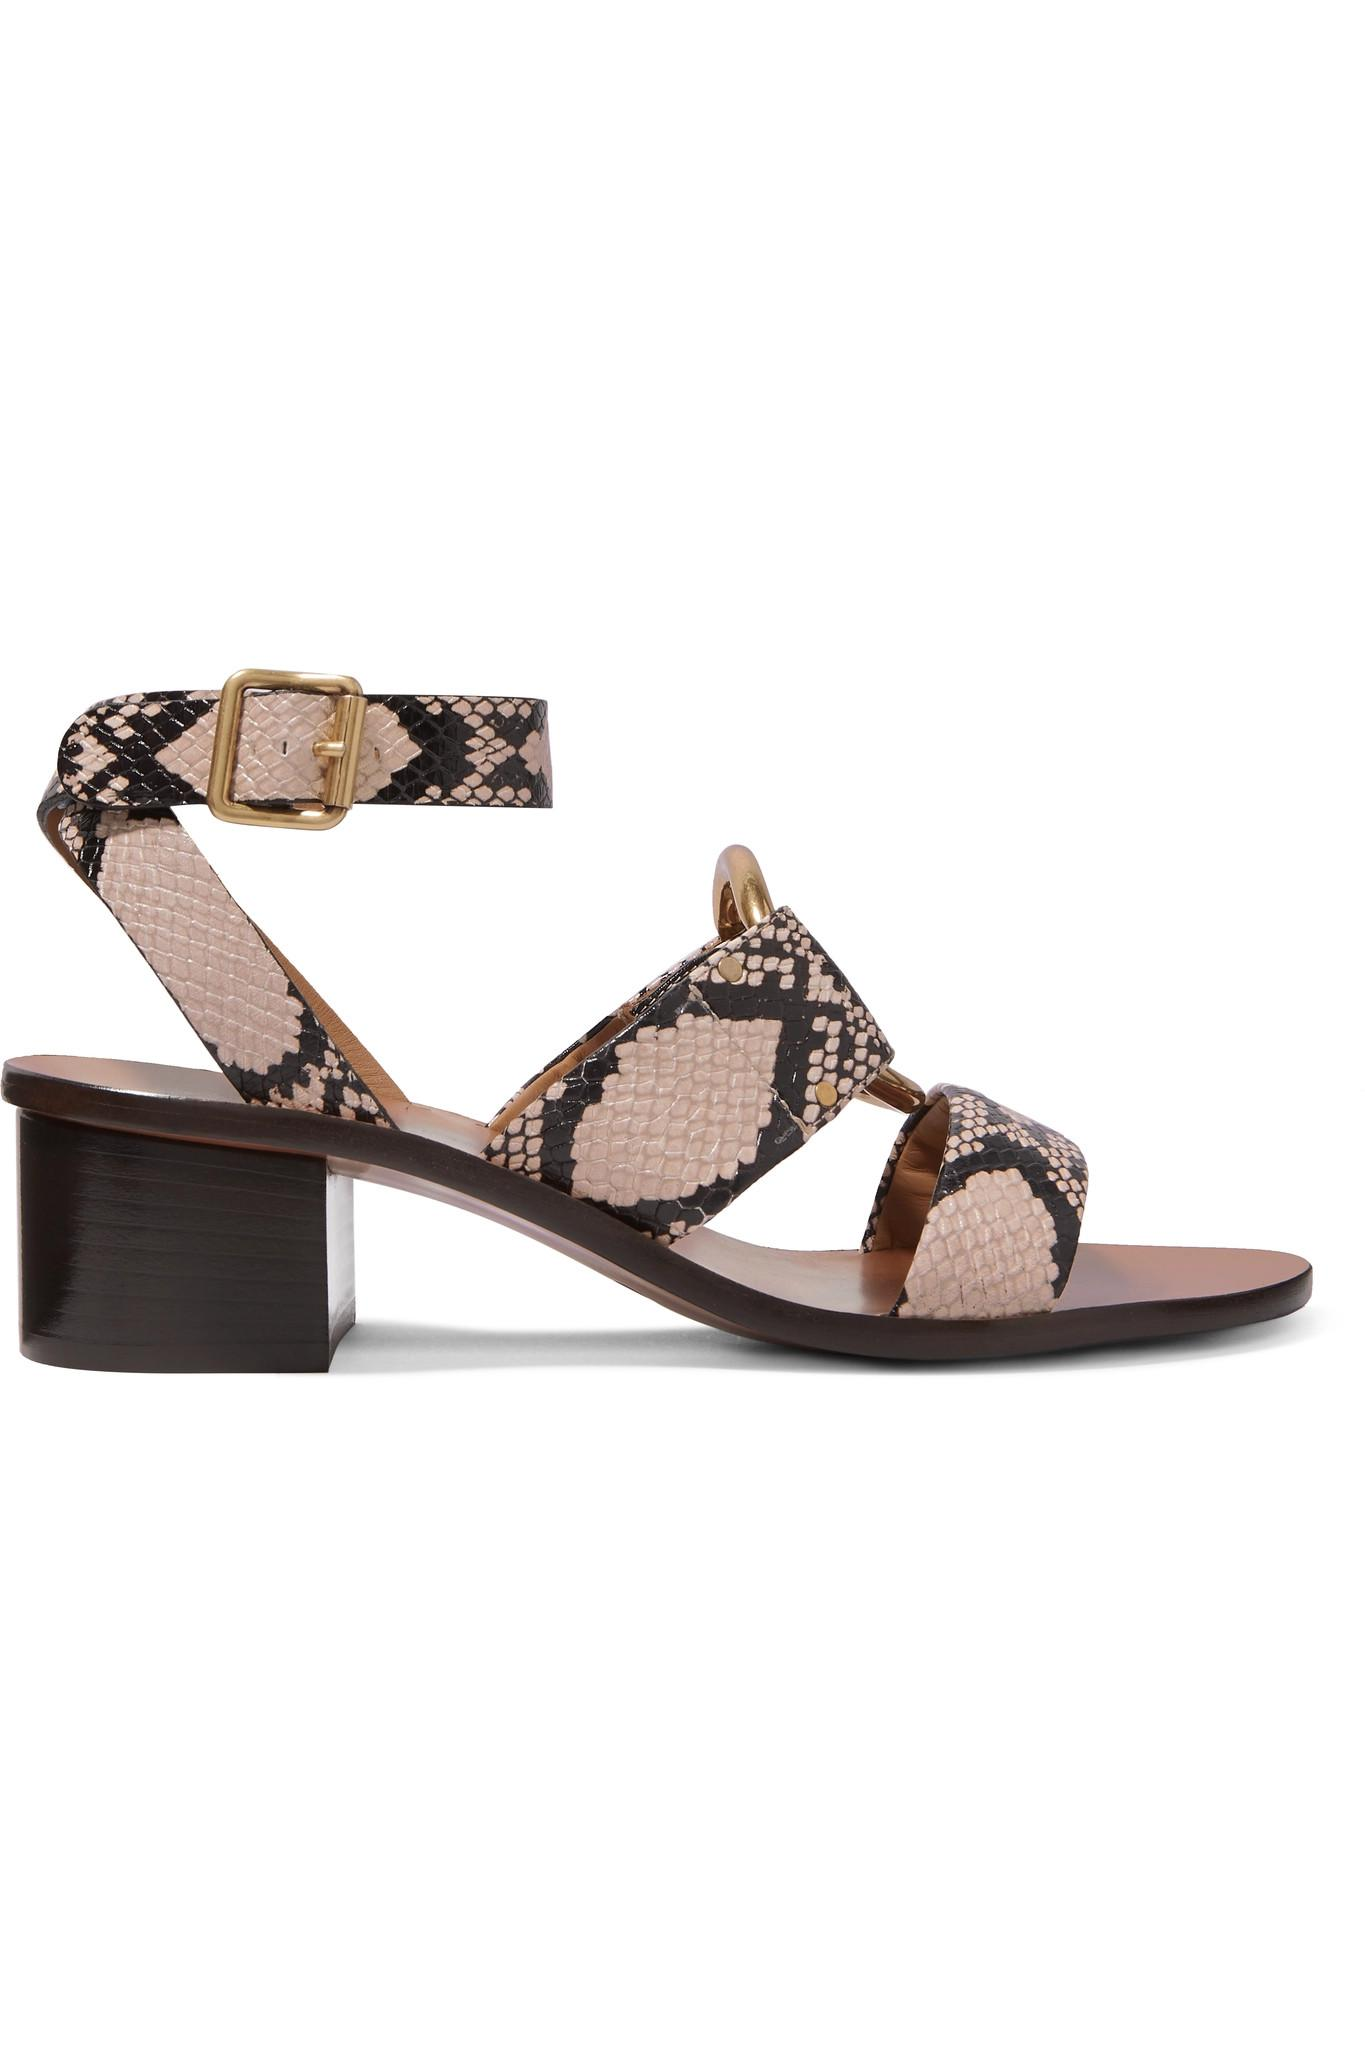 74ff71d16ba117 chloe-snake-print-Rony-Embellished-Snake-effect-Leather-Sandals.jpeg